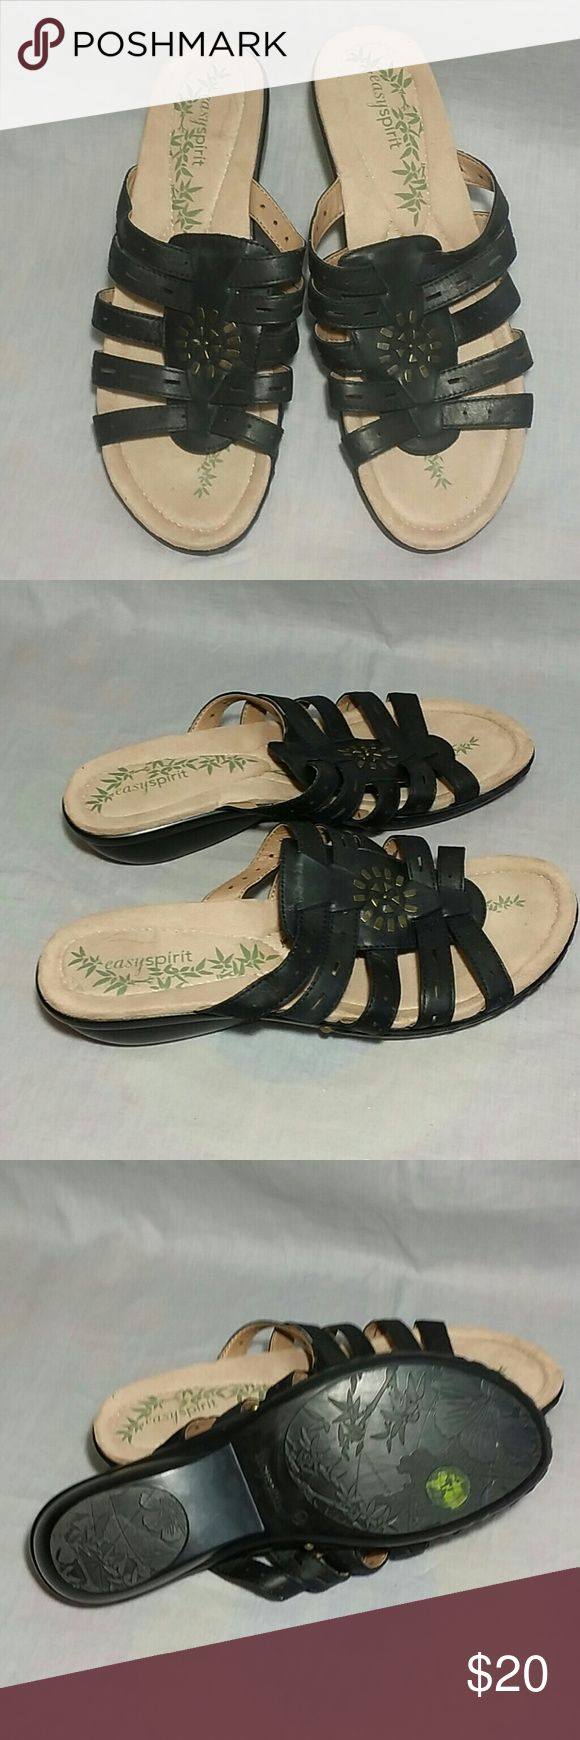 EASY SPIRIT Sandals Black Size 8.5 M Leather Item is in a good condition, NO PETS AND SMOKE FREE HOME. Easy Spirit Shoes Sandals